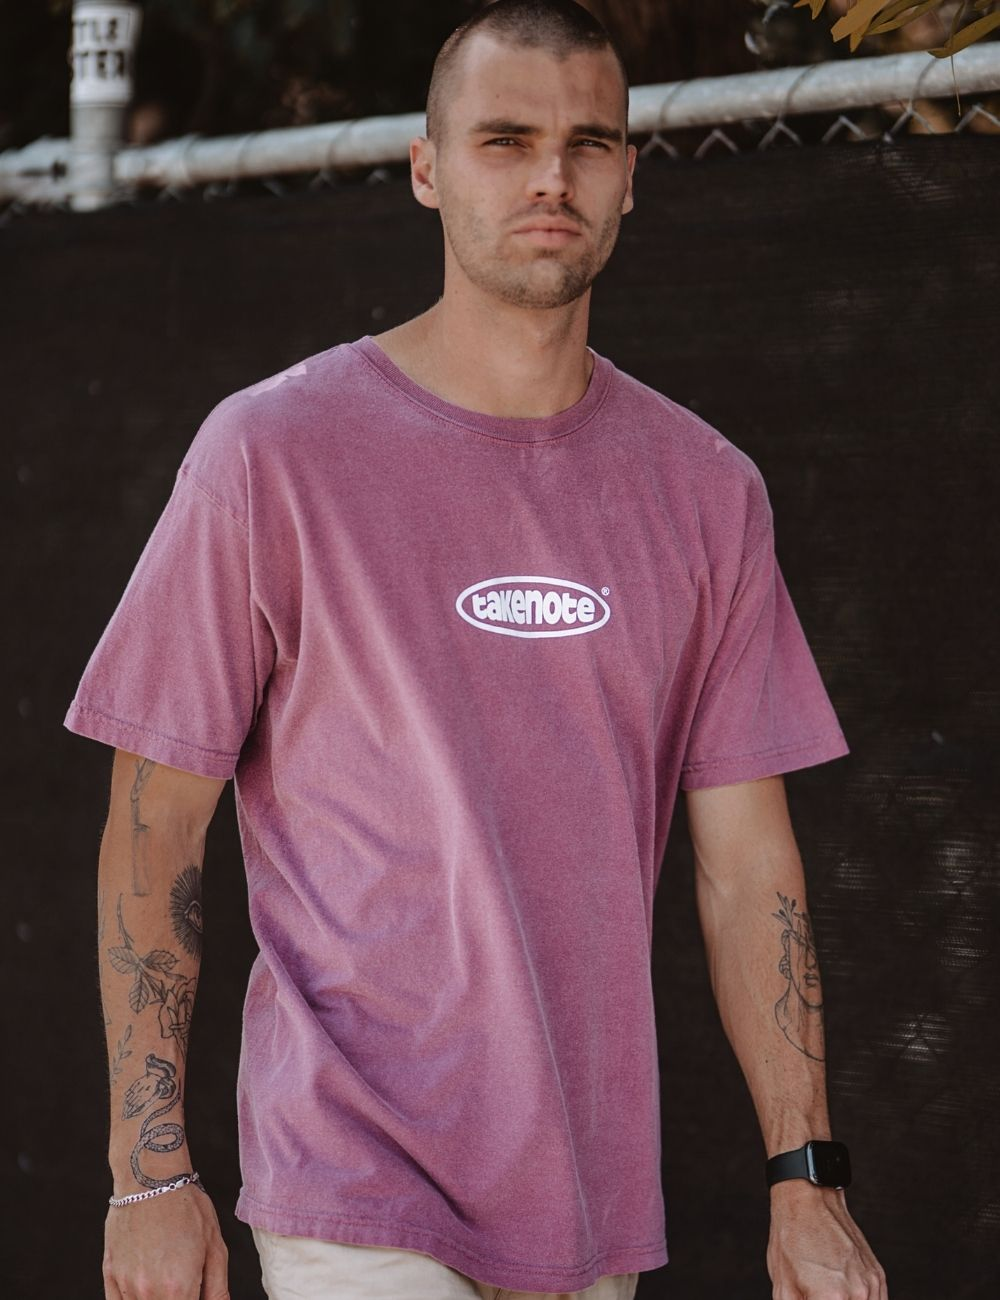 takenote® Faded Court Tee in Mauve